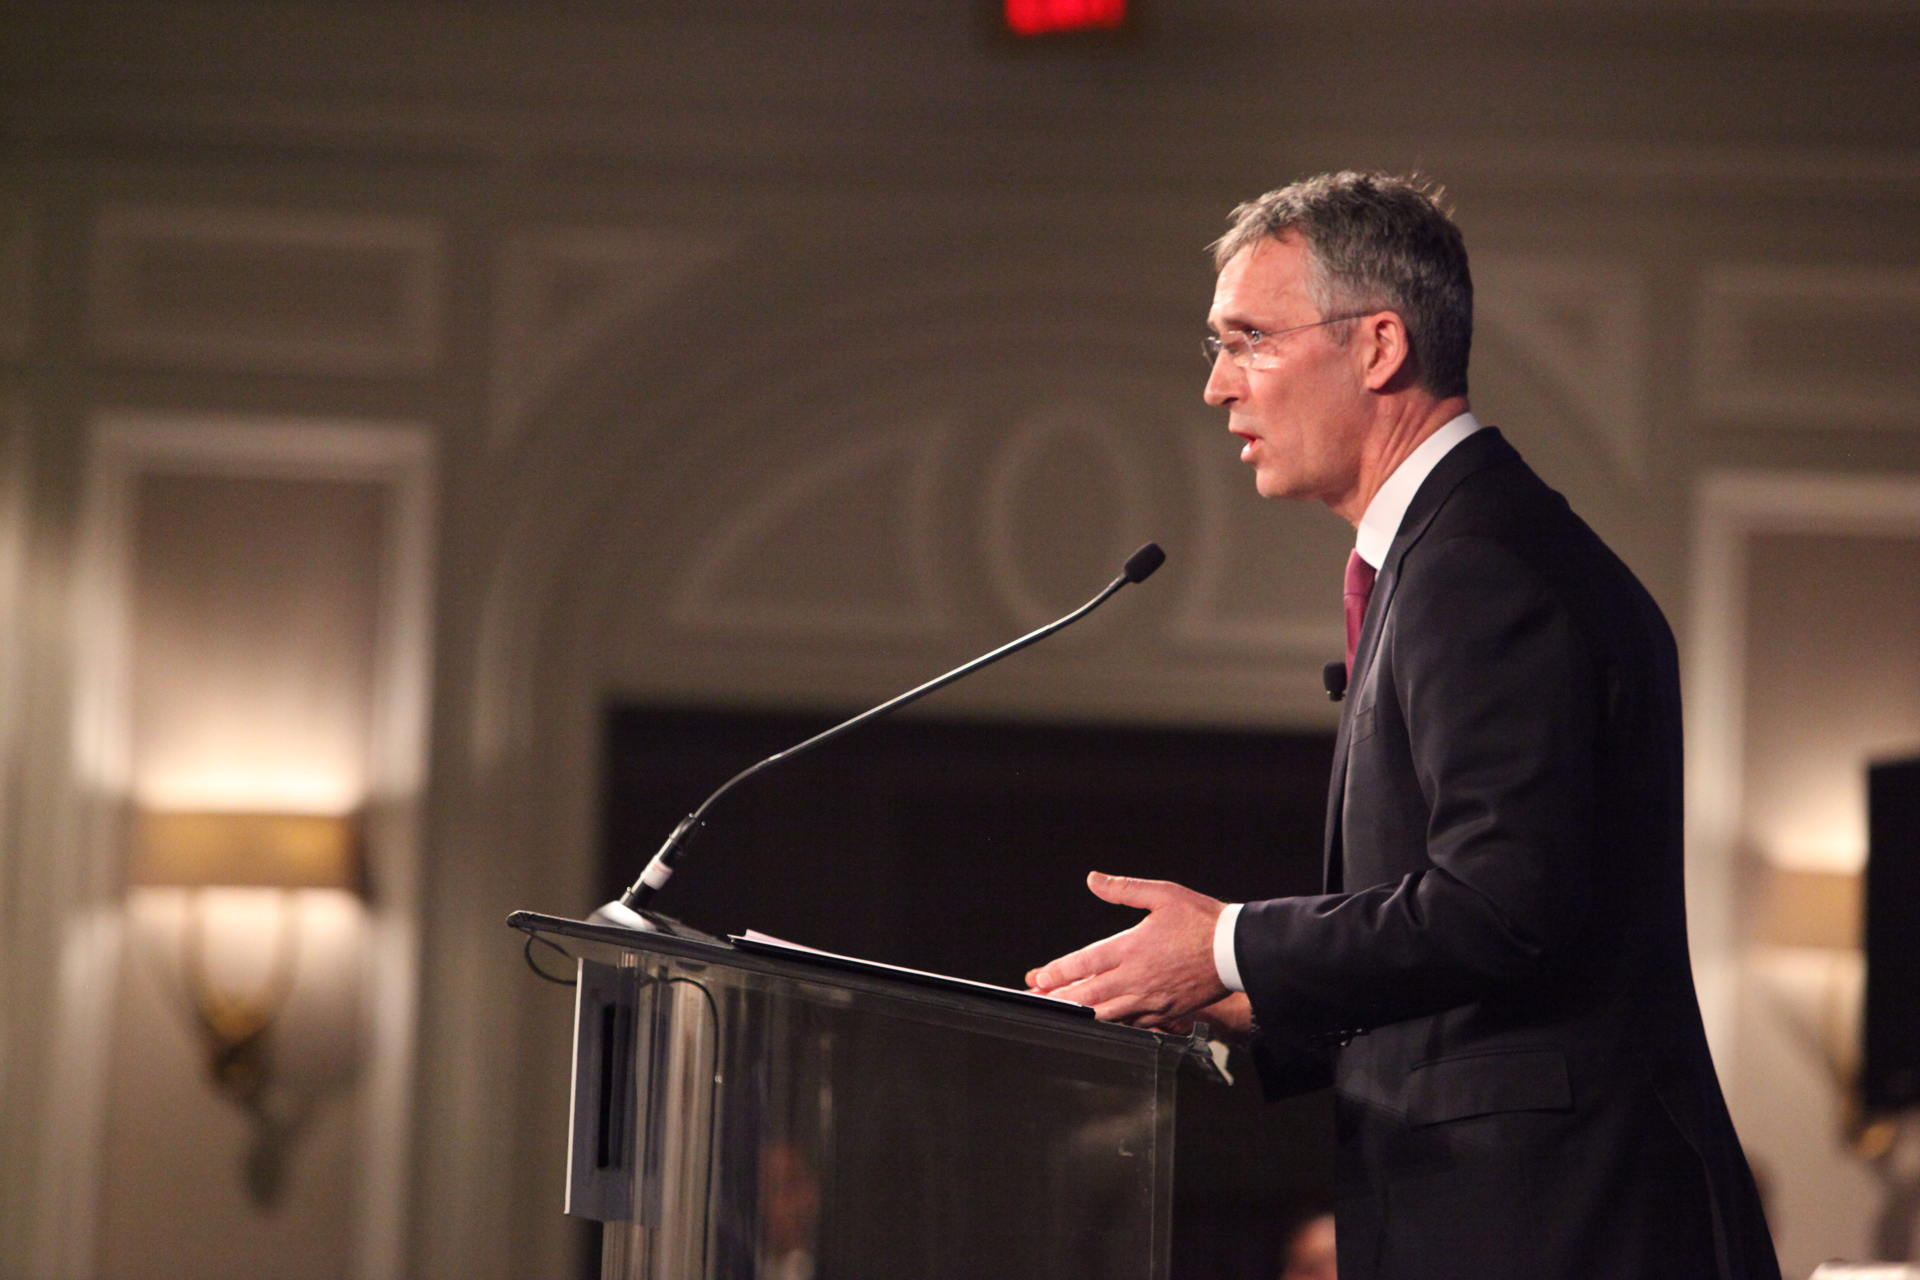 NATO Secretary General Stoltenberg Stands Up for the Alliance